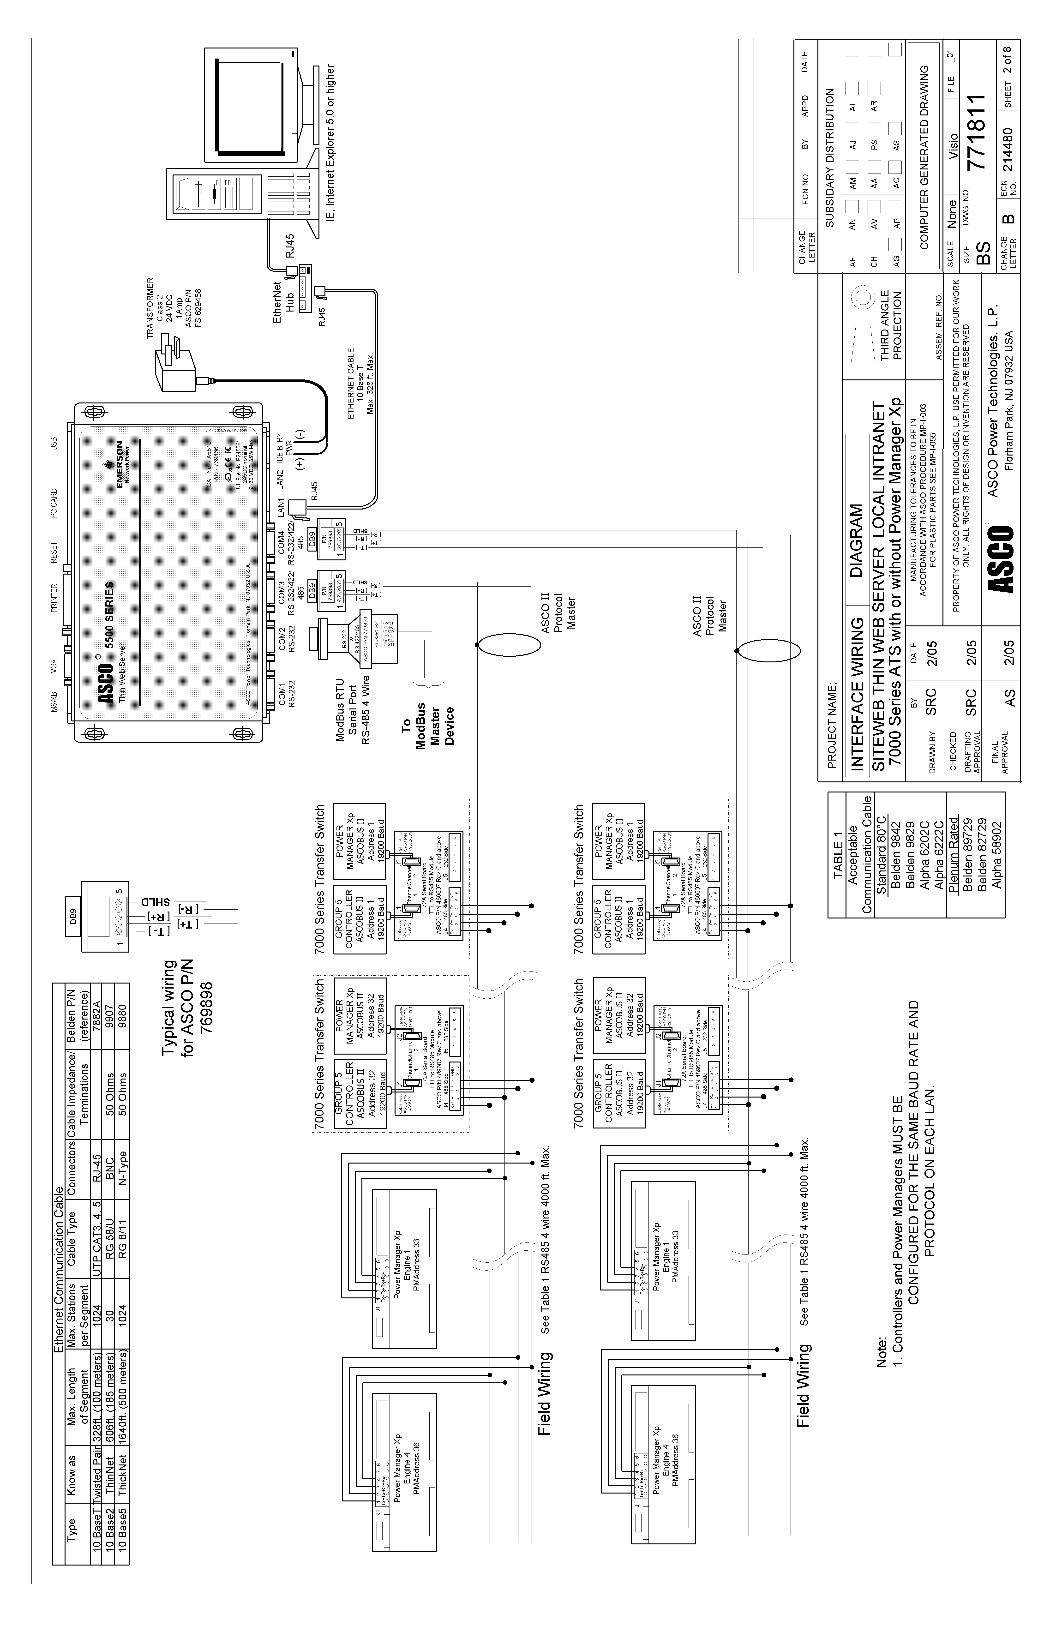 Asco Wiring Diagram - Schematics Wiring Diagrams •